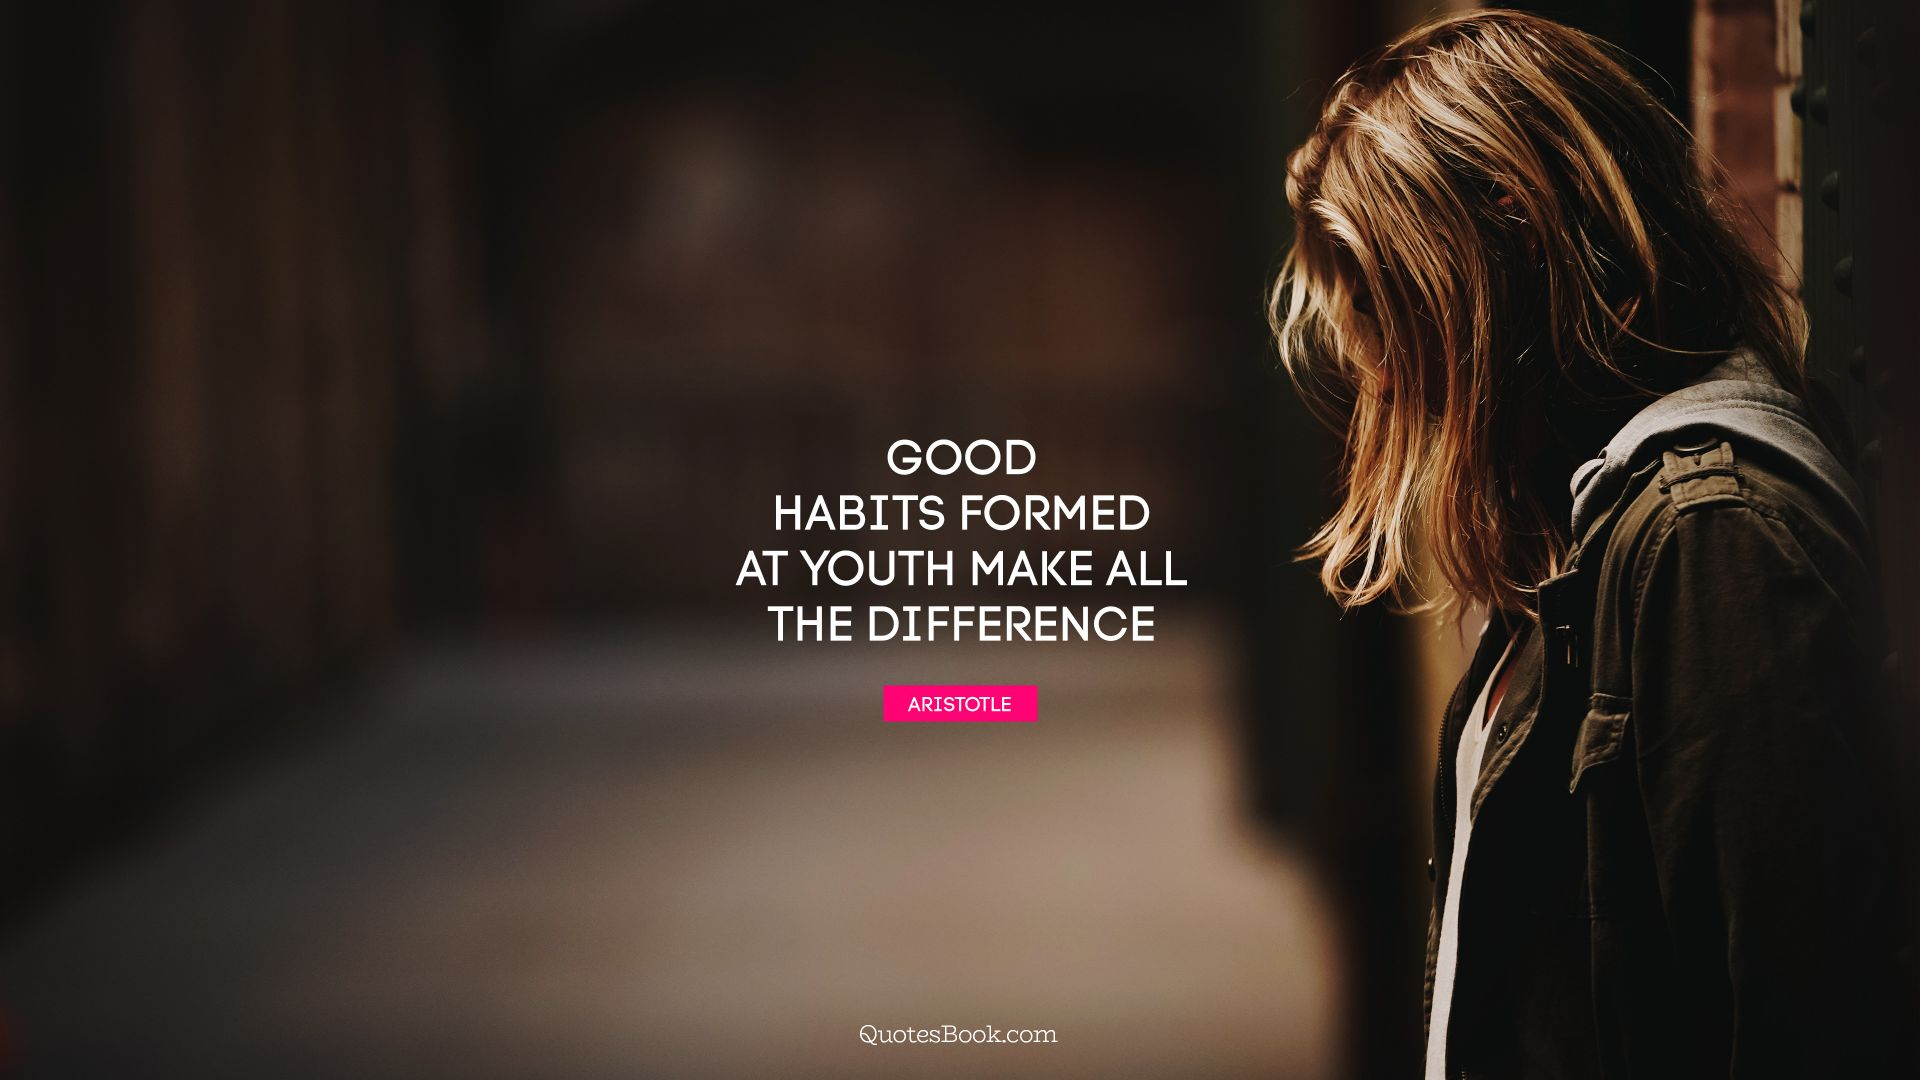 Good habits formed at youth make all the difference. - Quote by Aristotle